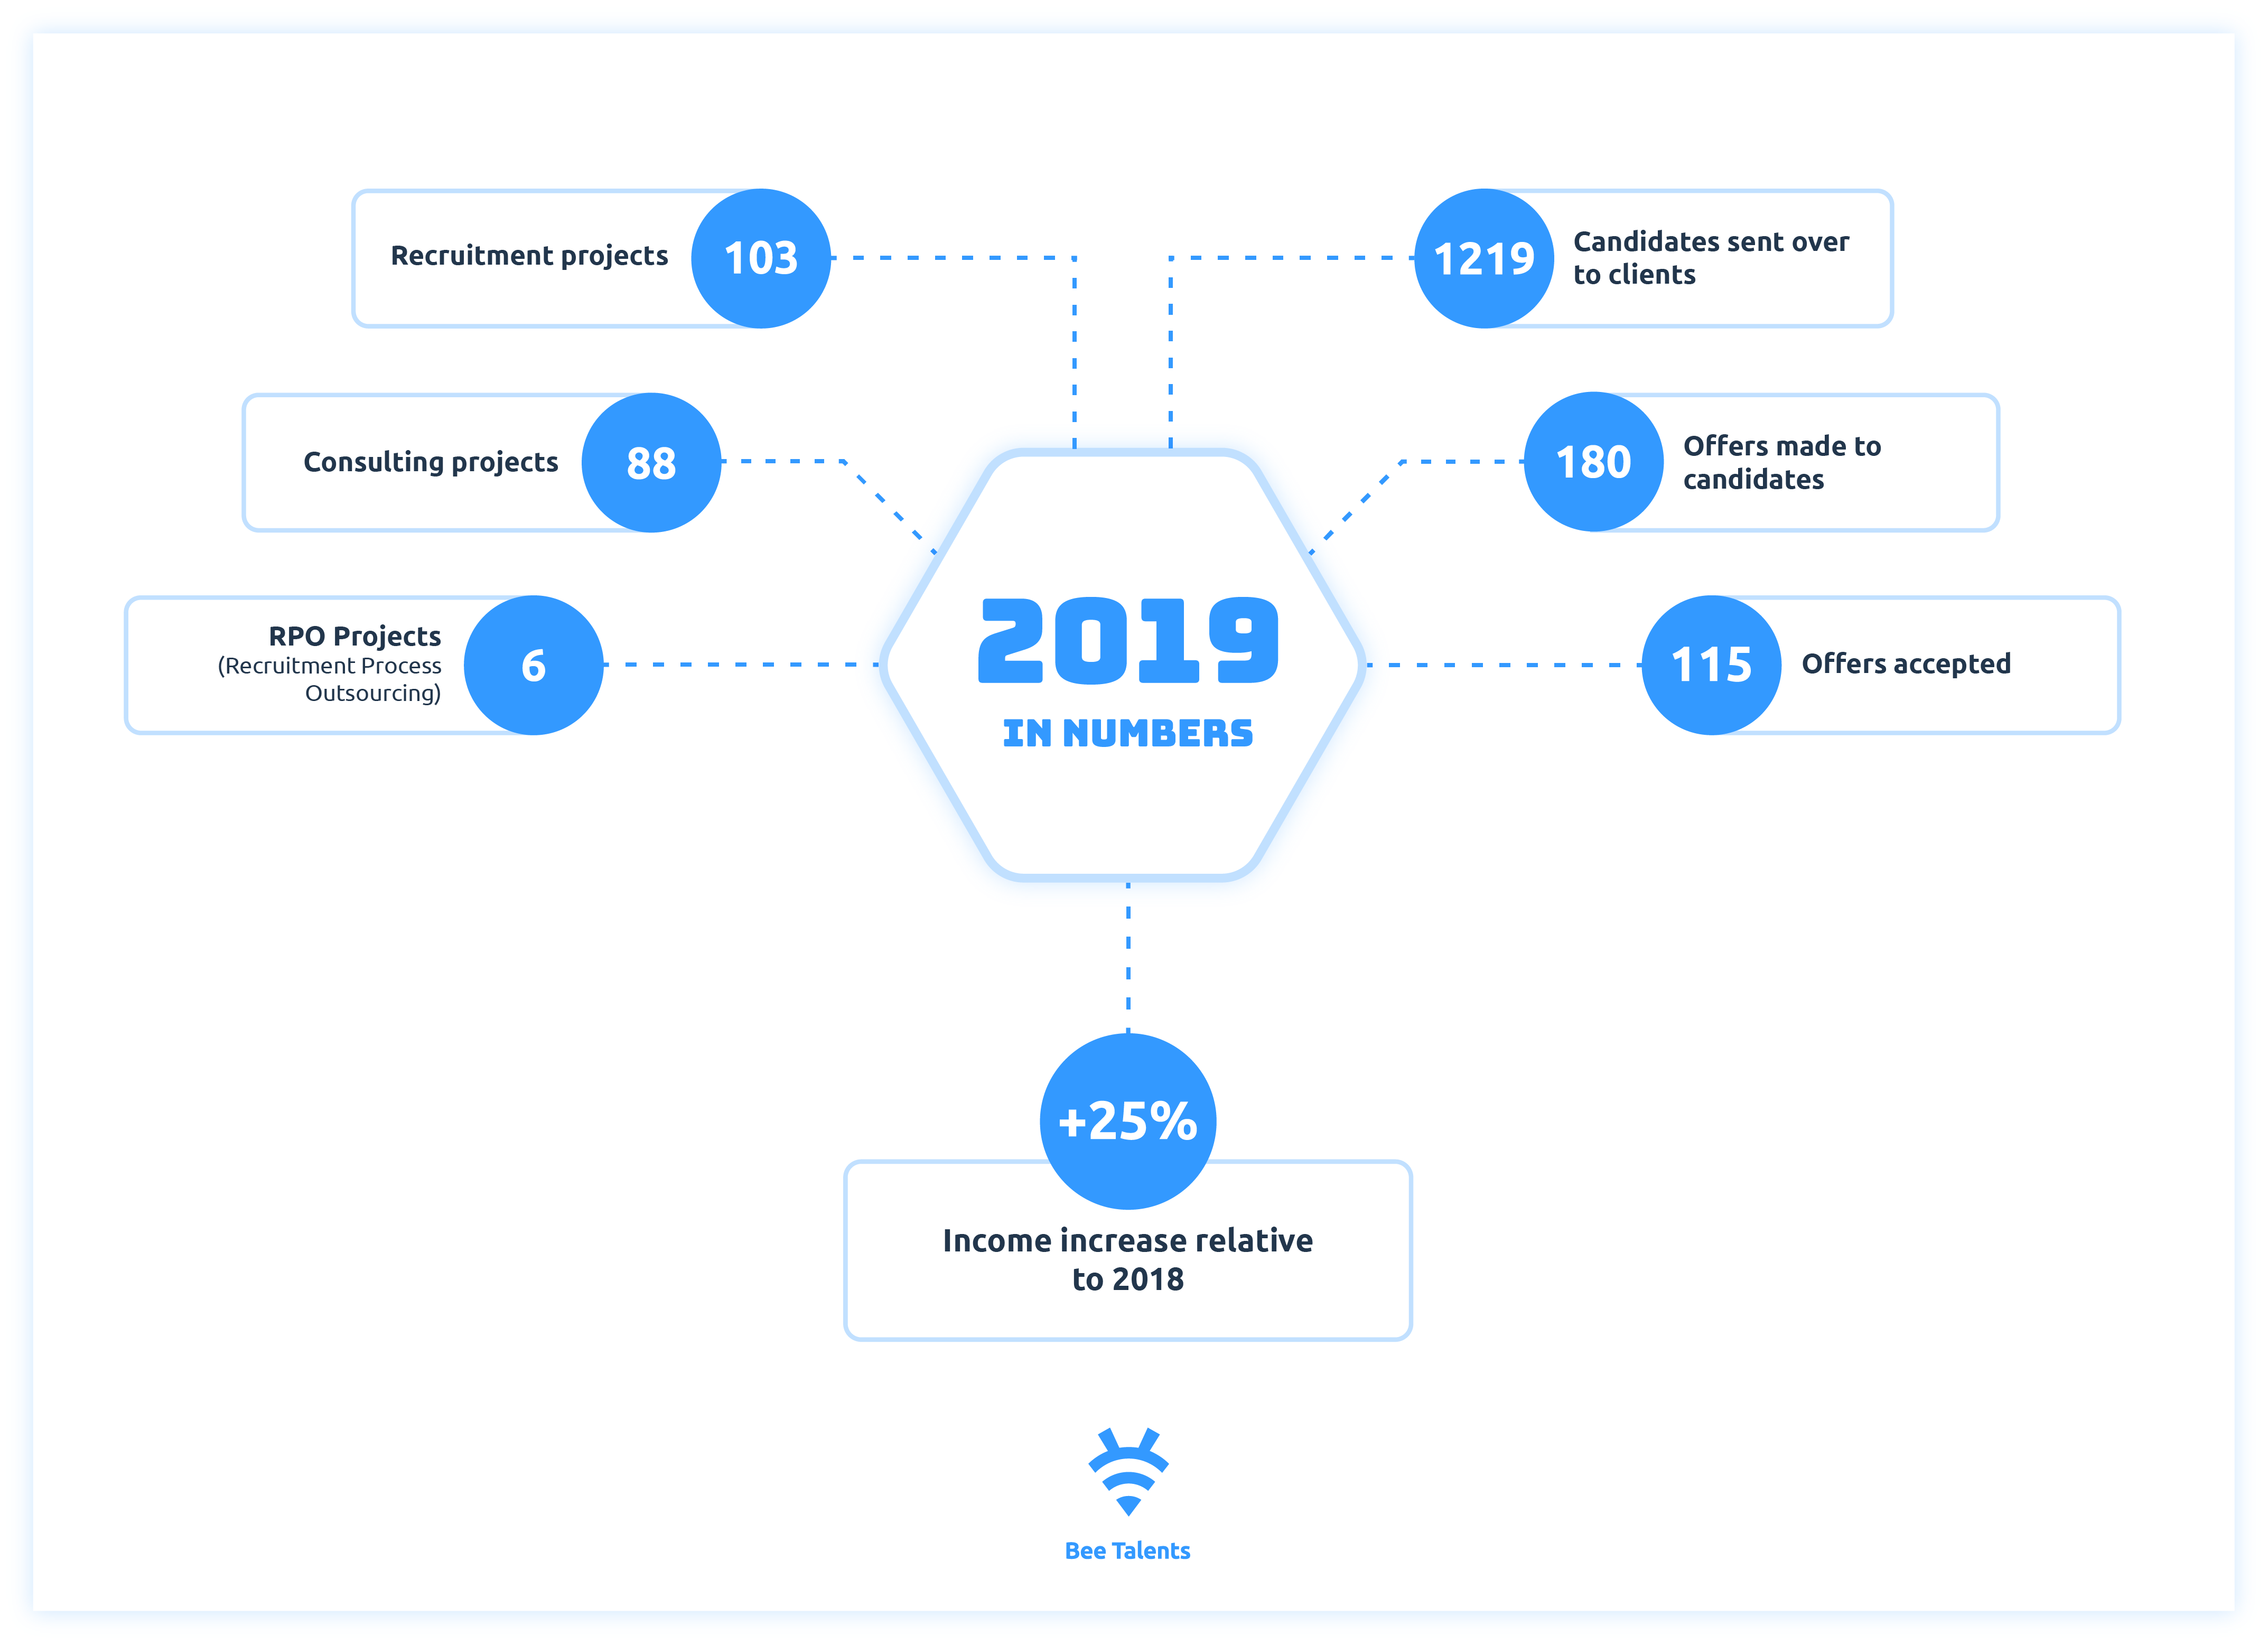 2019 in numbers | Bee Talents